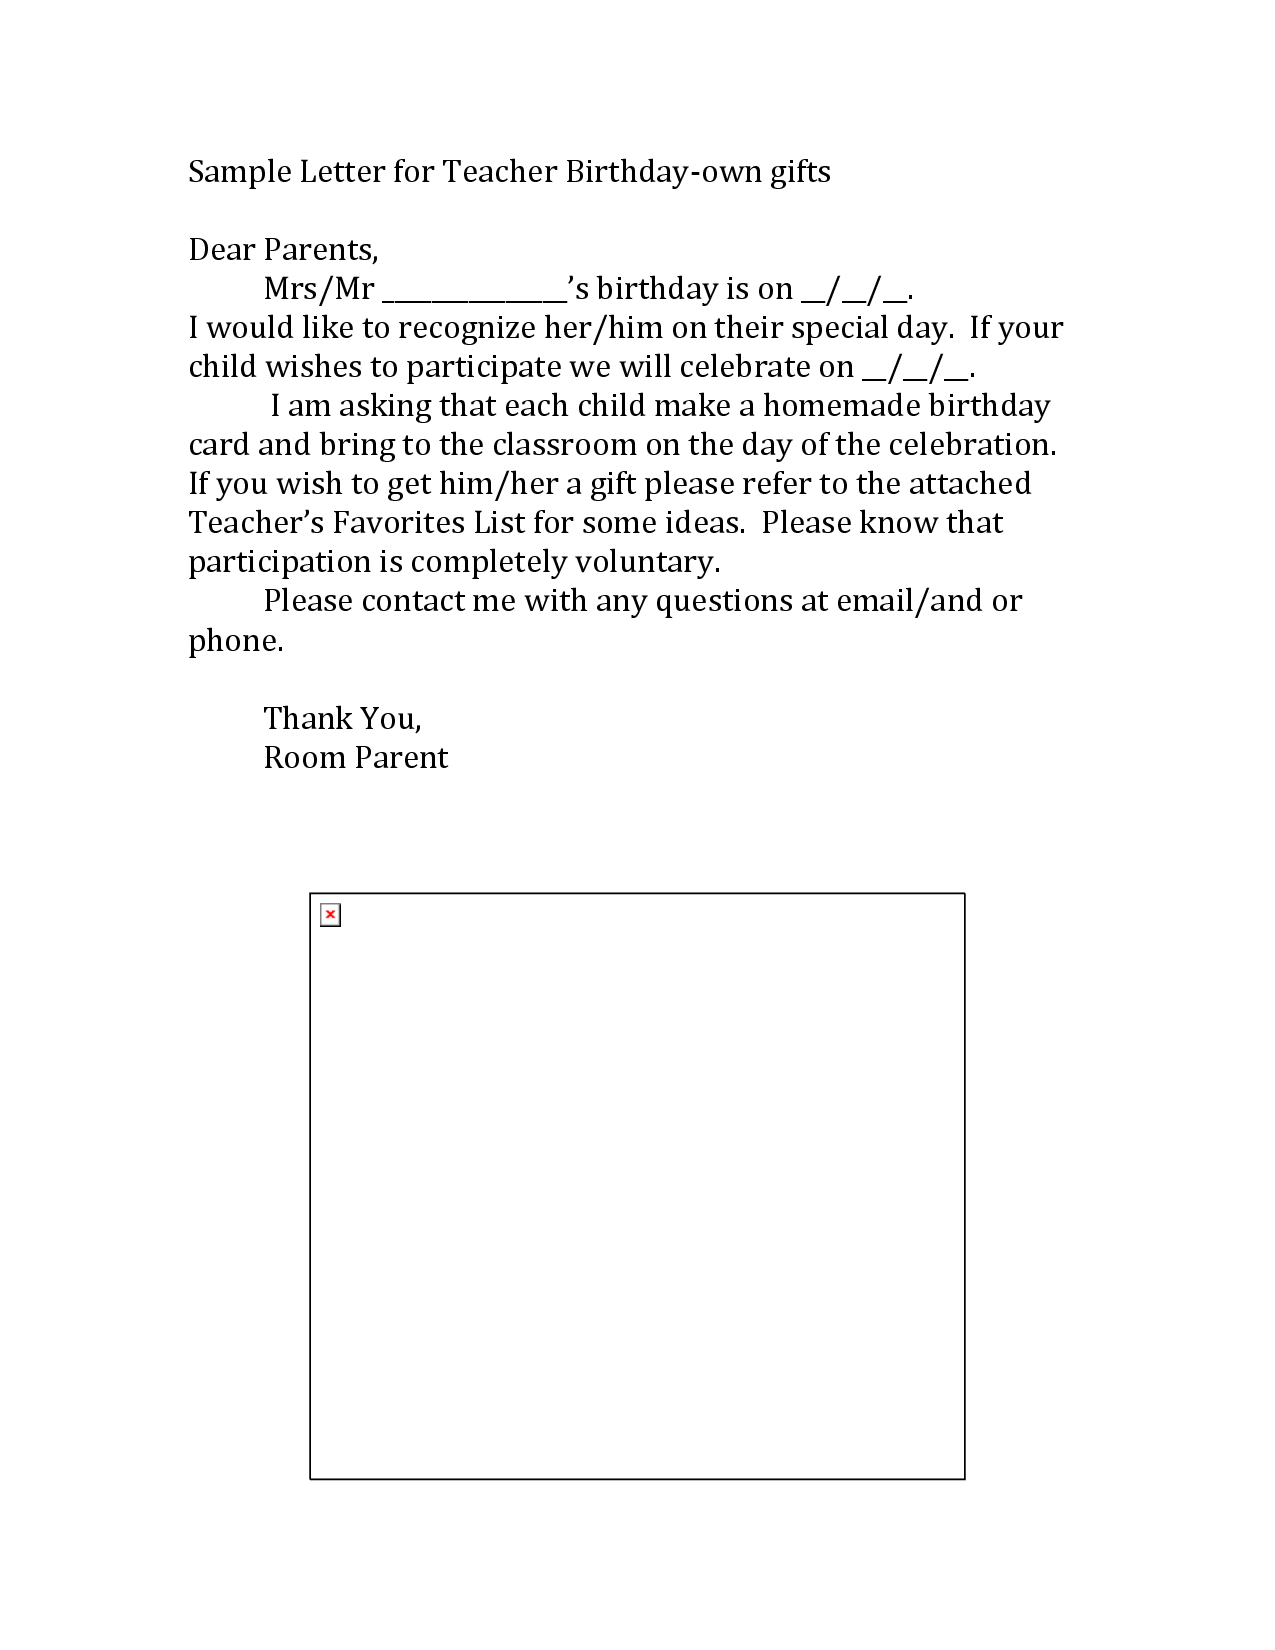 Teacher templates letters parents sample letter for teacher teacher templates letters parents sample letter for teacher birthday collecting for a gift spiritdancerdesigns Gallery